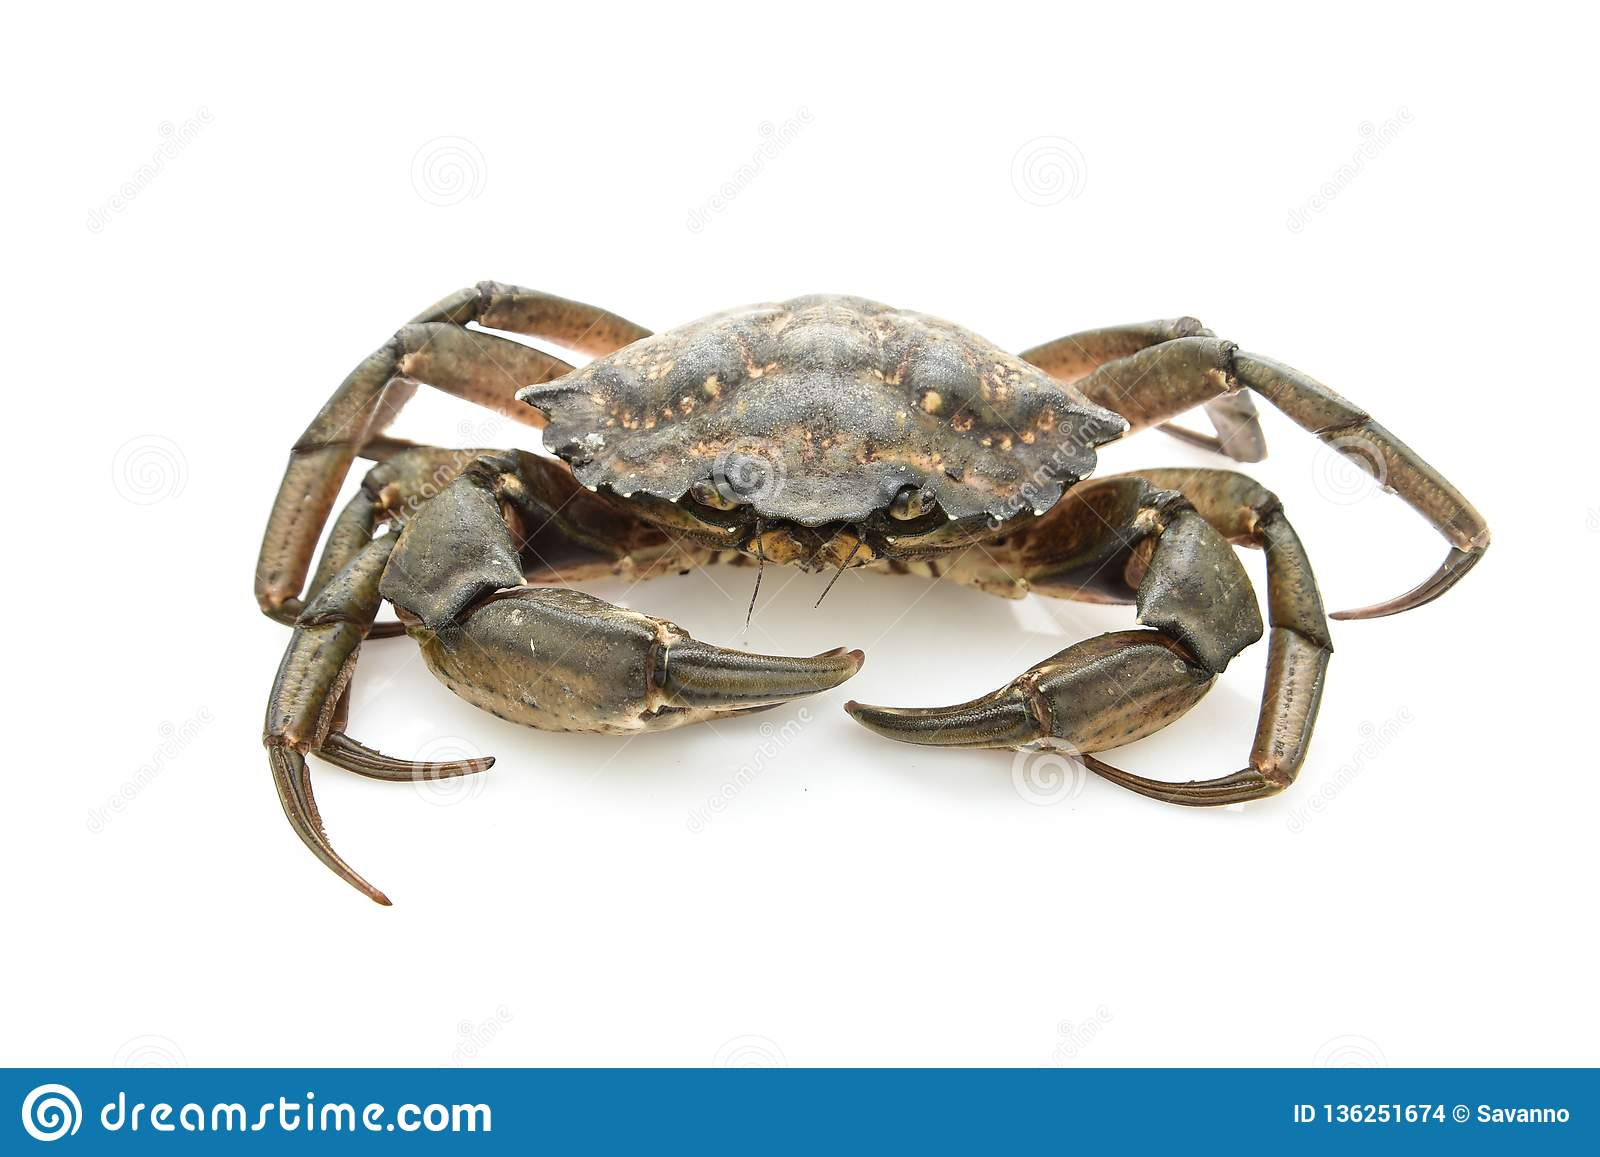 Crab. Black sea crustacean isolated on white background